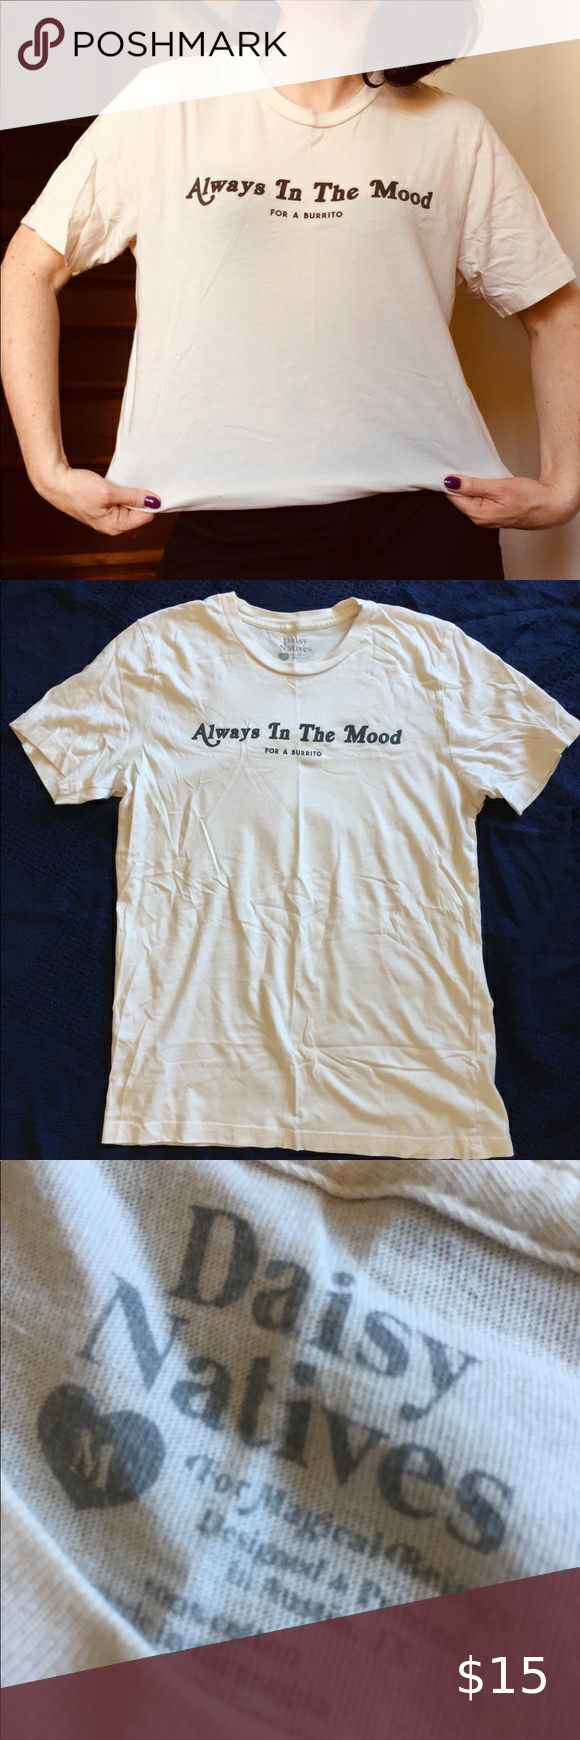 Beige Always In The Mood Burrito T Shirt Size M Shirt Size Black Button Shirt Rust Skinny Jeans